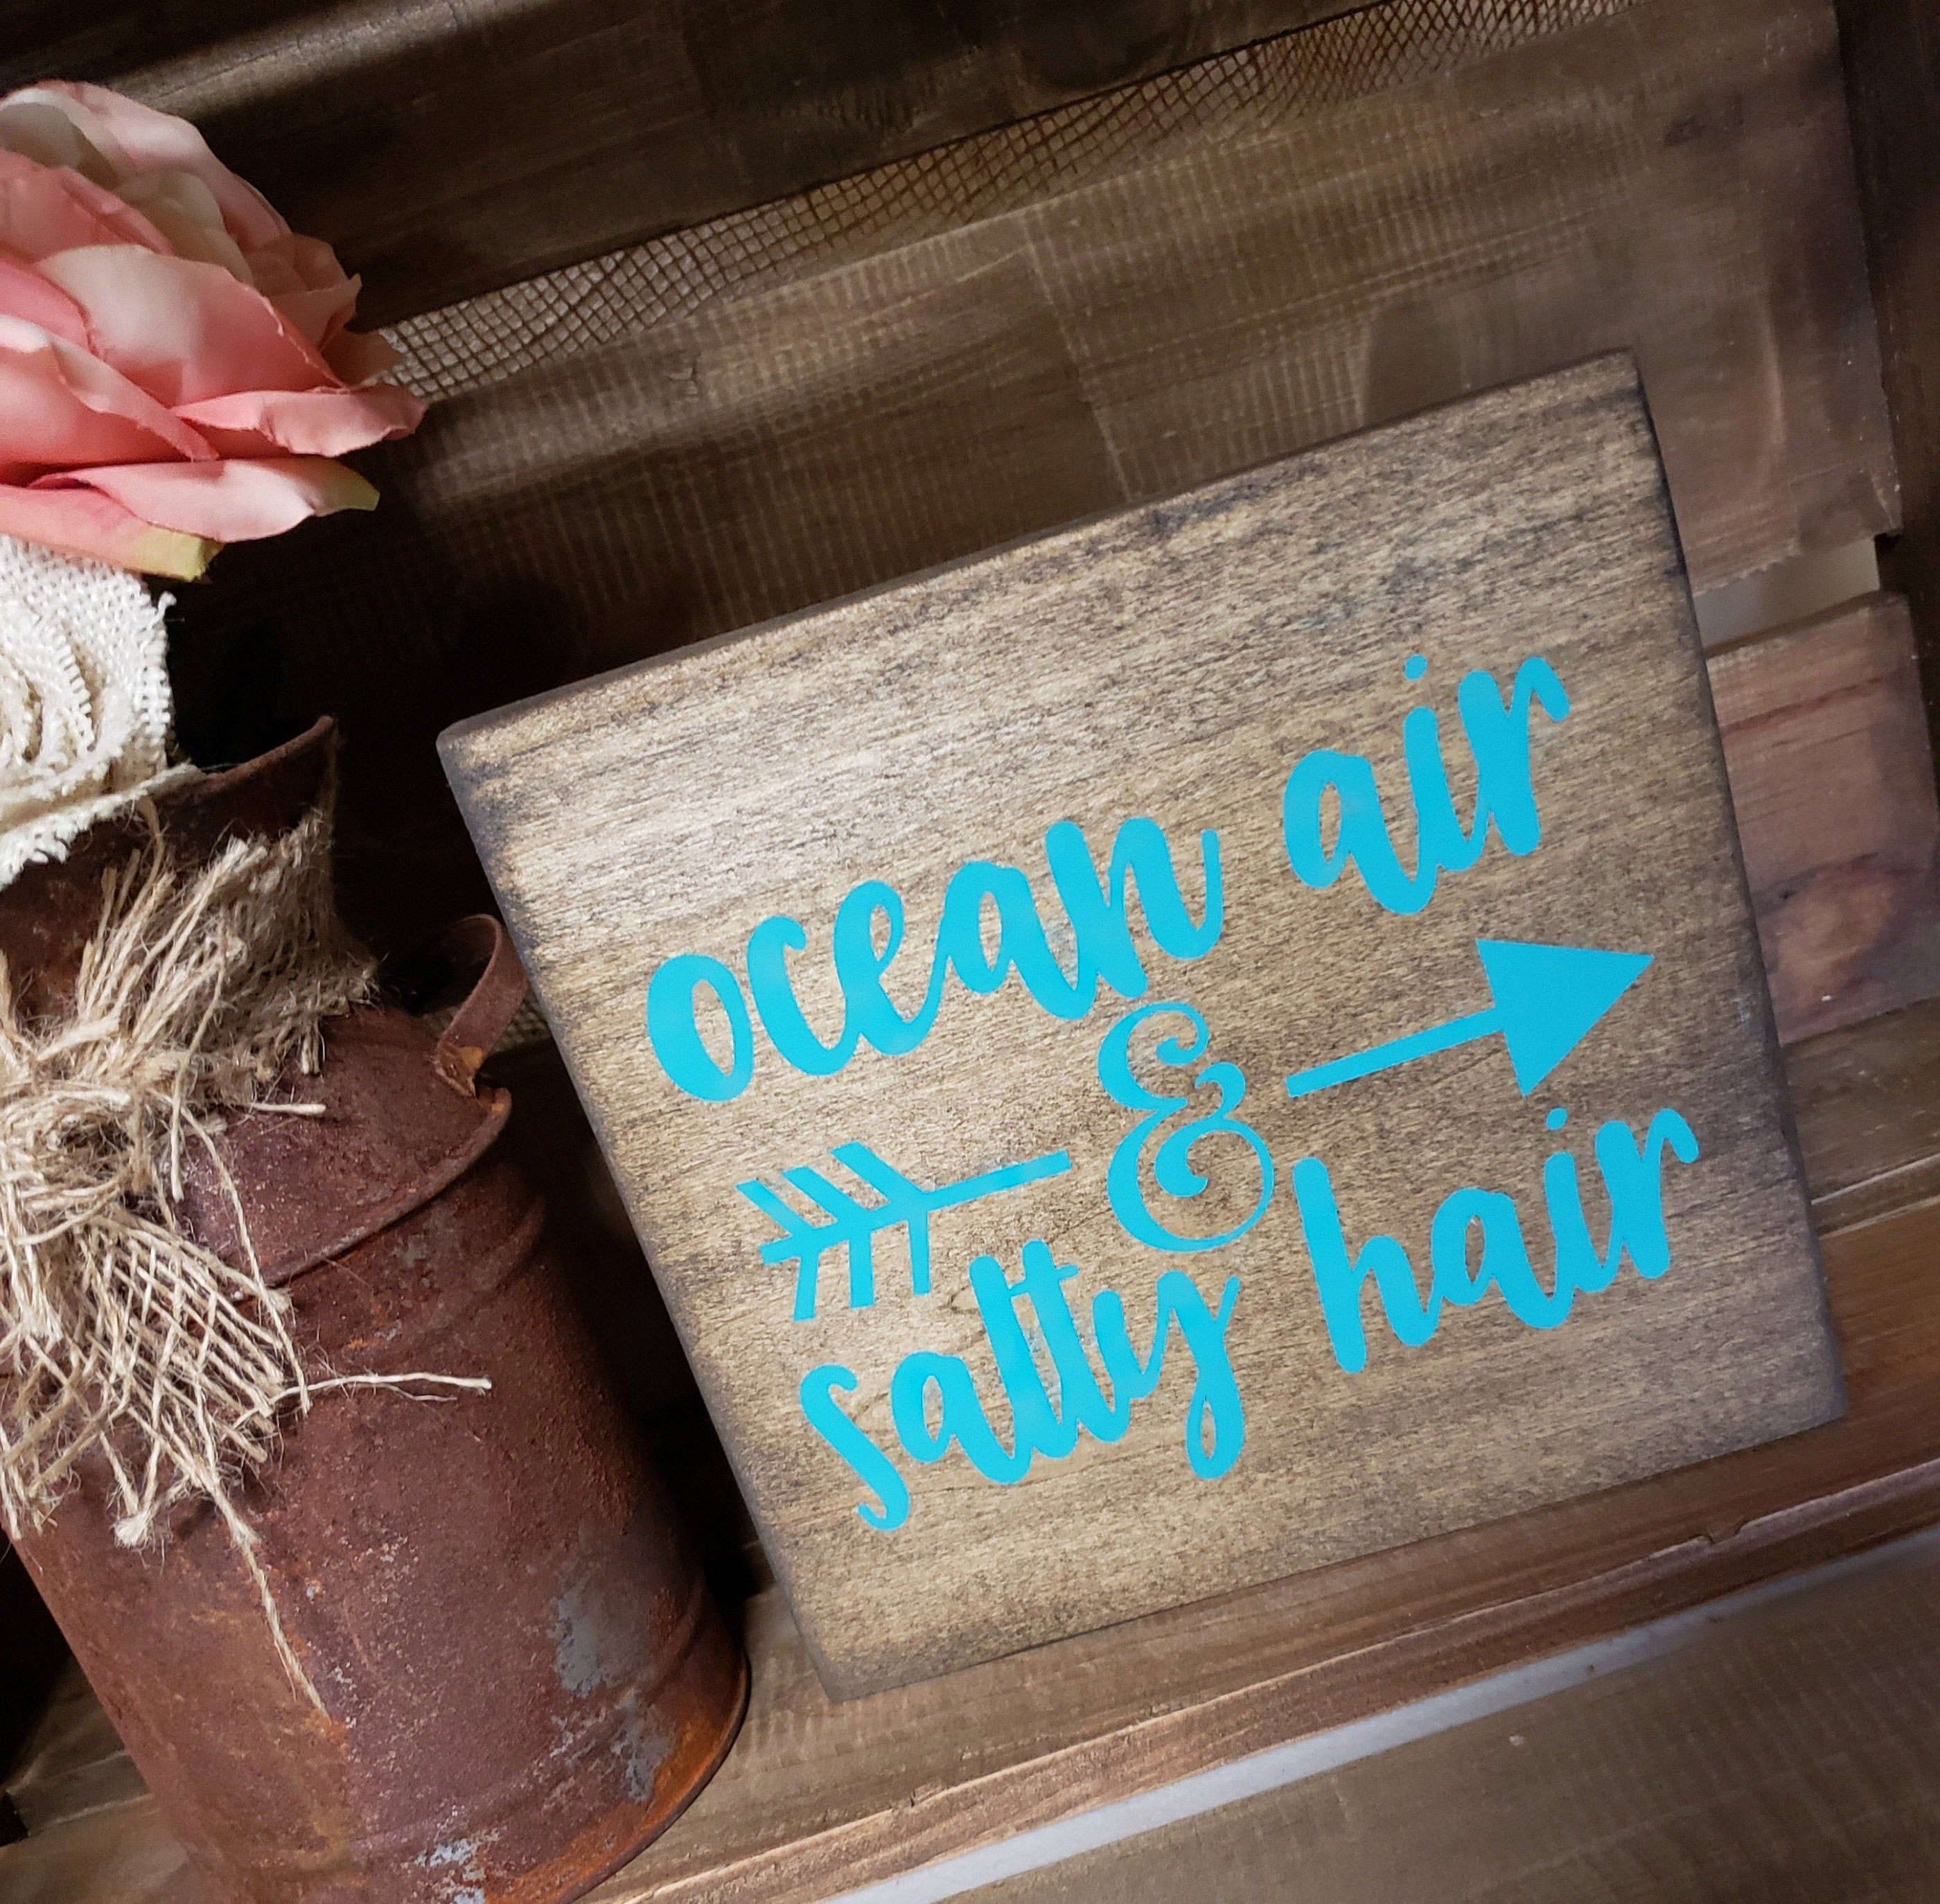 Ocean Air Salty Hair Beach Beachy Summer Sun Distressed Sign Shelf Sitter Summertime Fun Shabby Chic Brown Turquoise Caribbean Blue Distressed Signs Wood Signs Summertime